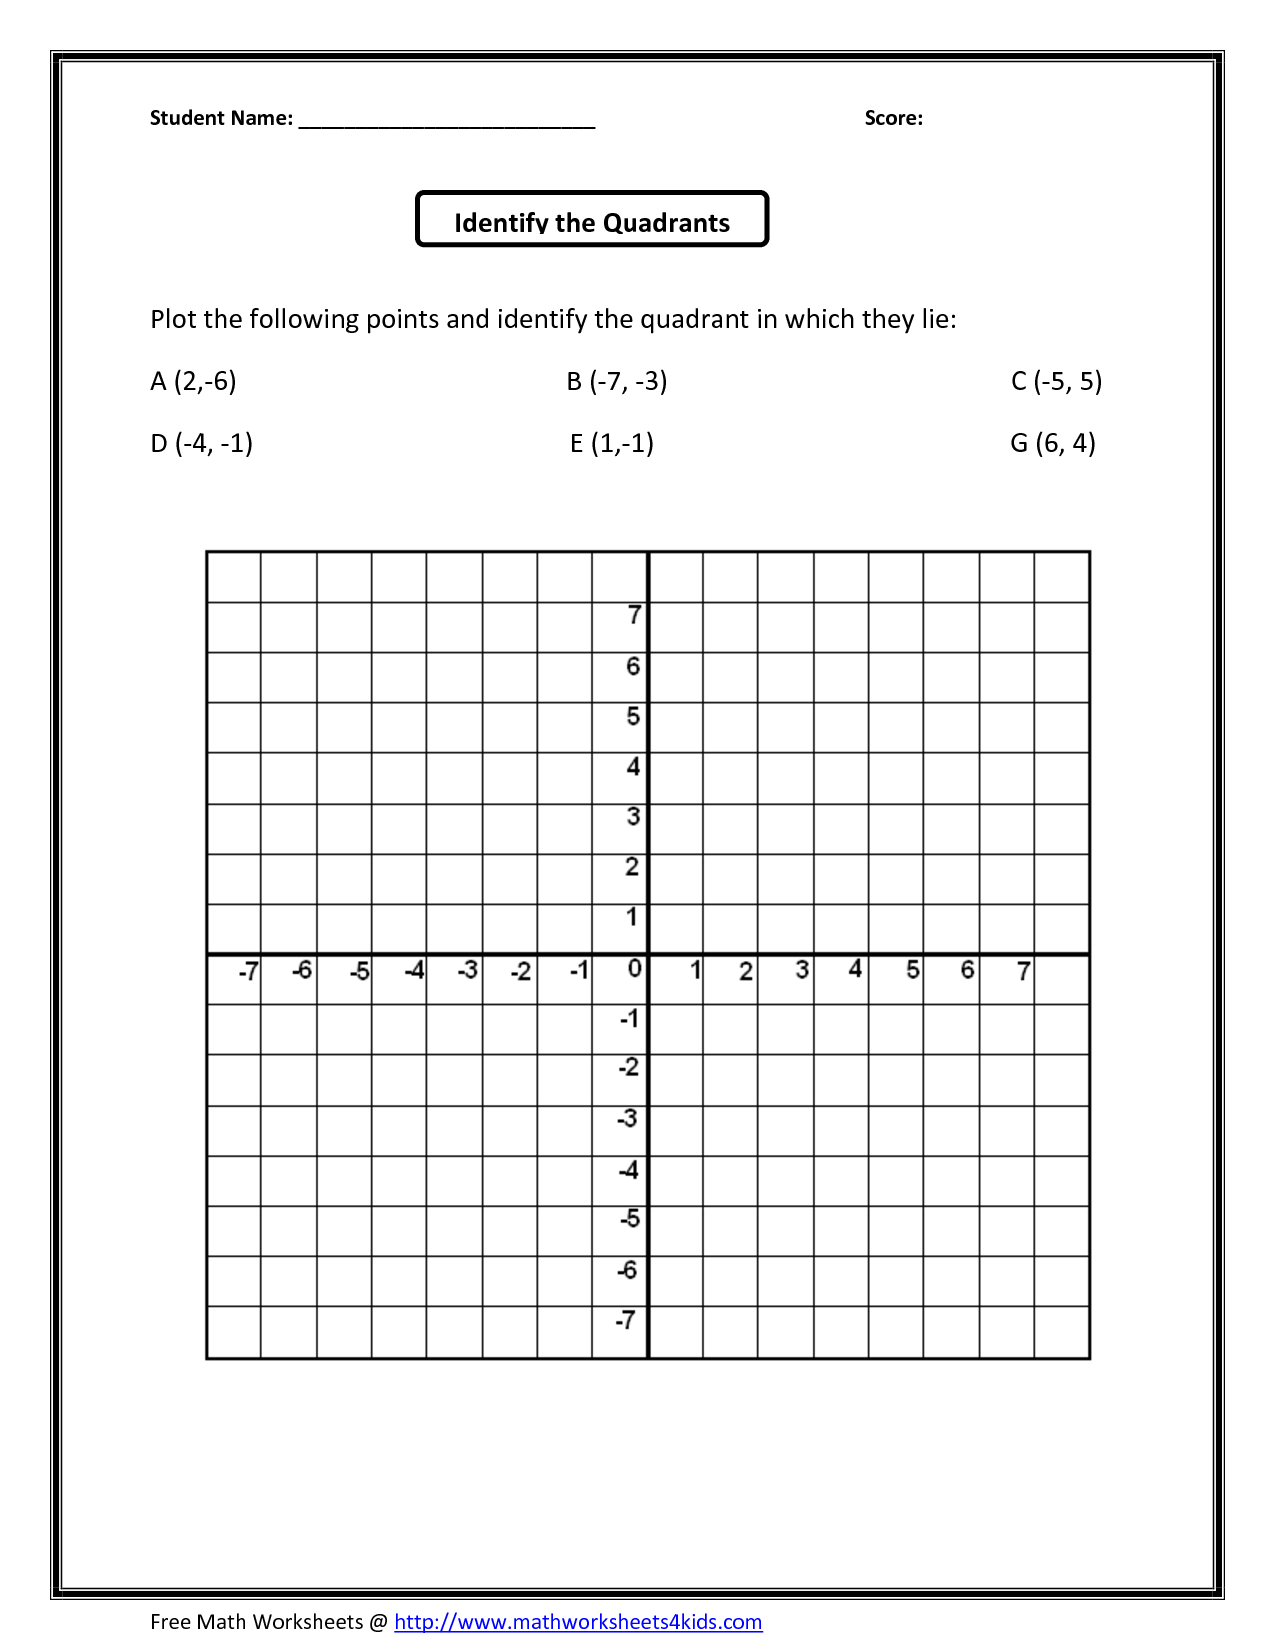 Math Coordinate Plane Grid Coordinate Template 0 To 12 2